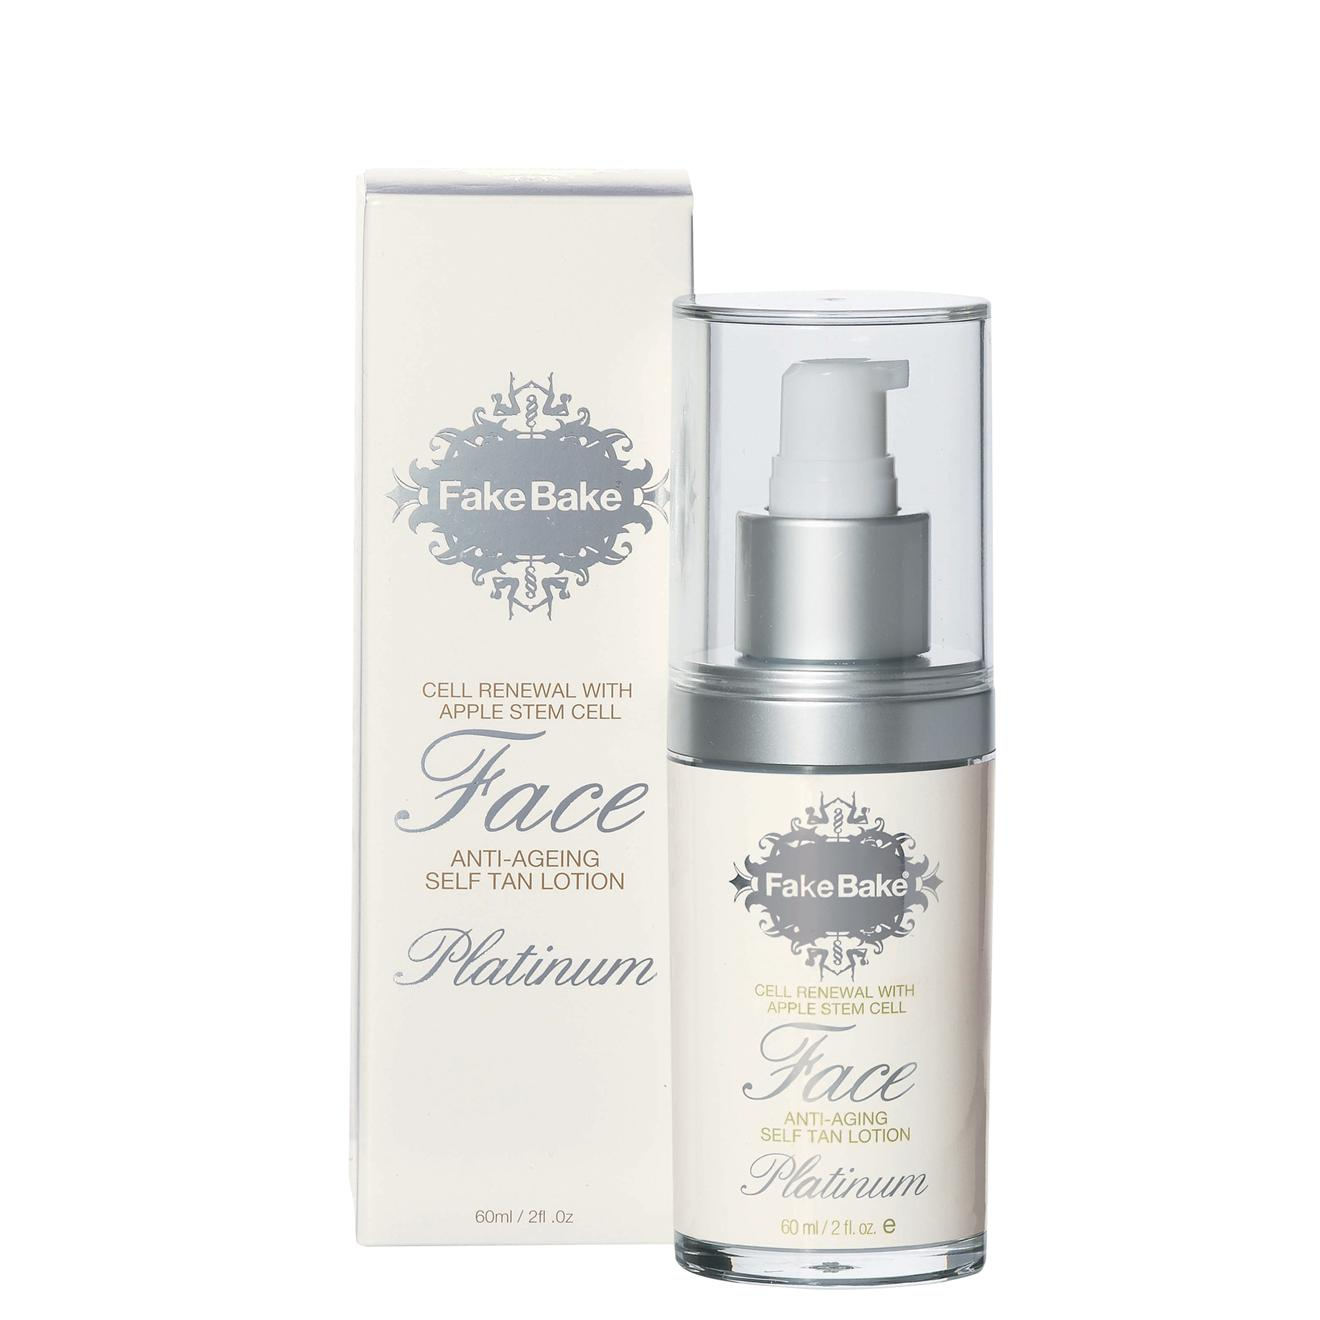 Fake Bake Face Anti-Aging Self-Tan Lotion Platinum  2 oz